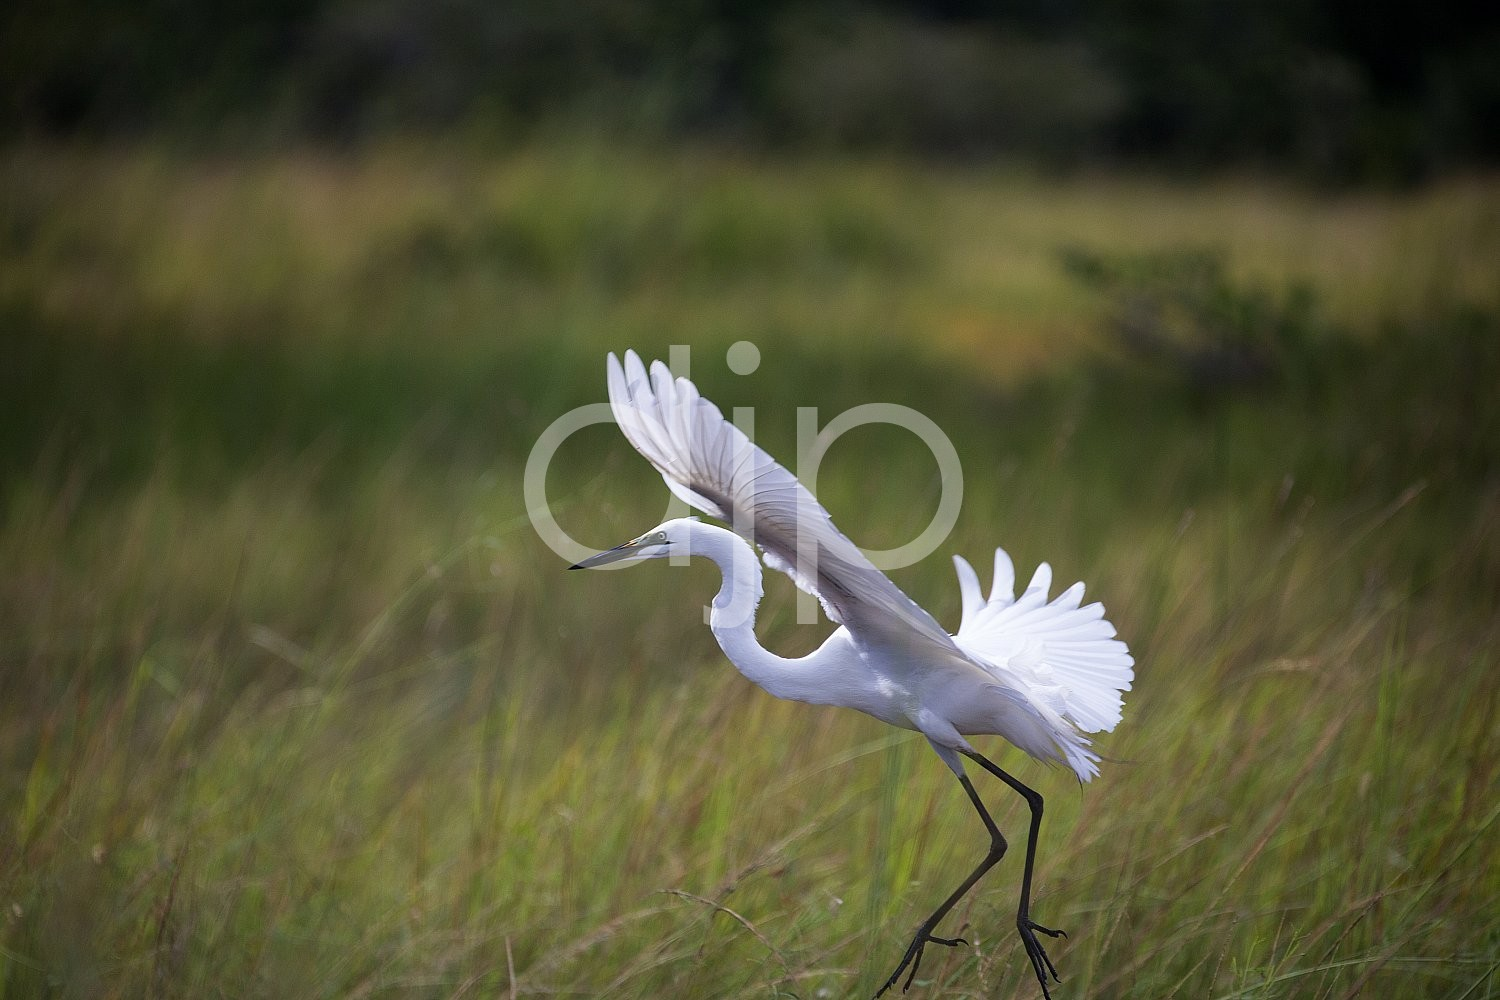 Botswana, Safari, birds, djonesphoto, green, white, zambia, Africa